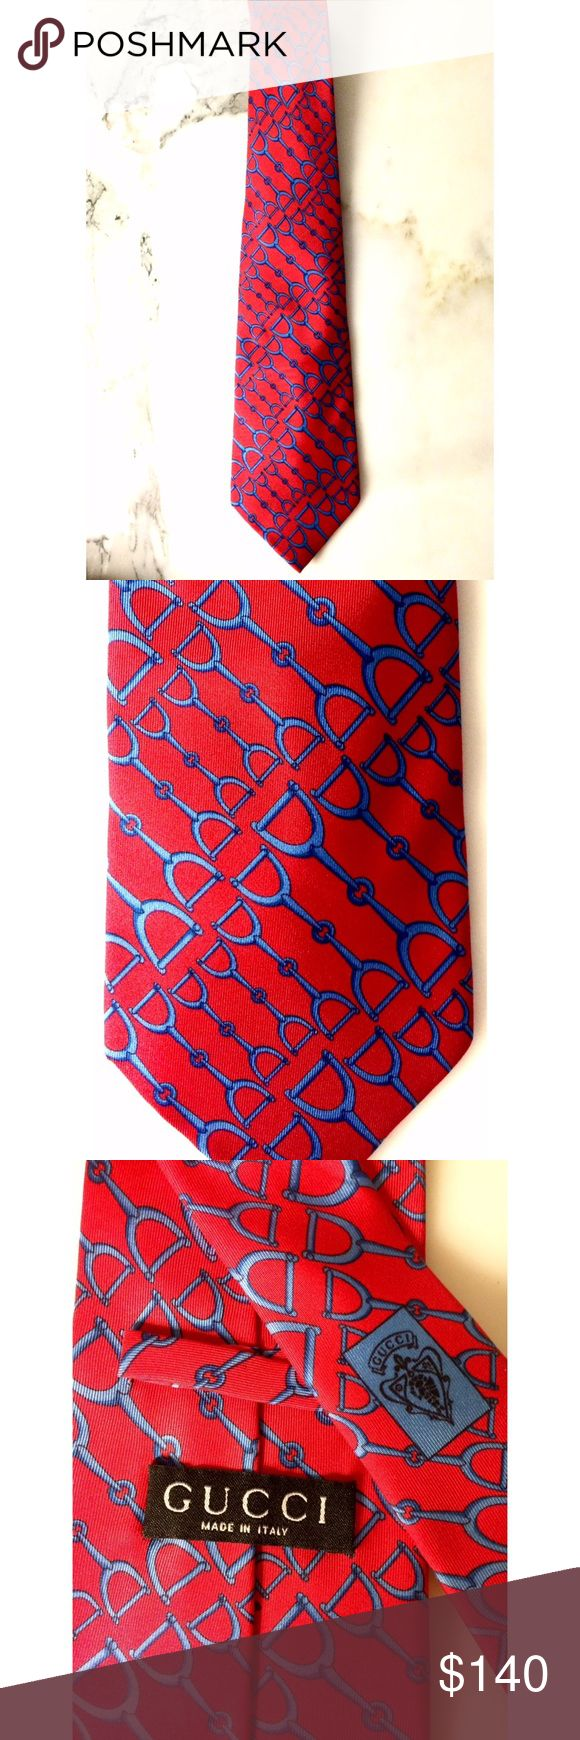 Tom Ford era Gucci silk tie Gucci tie from 1998  100% silk Made in Italy   Excellent Condition Gucci Accessories Ties